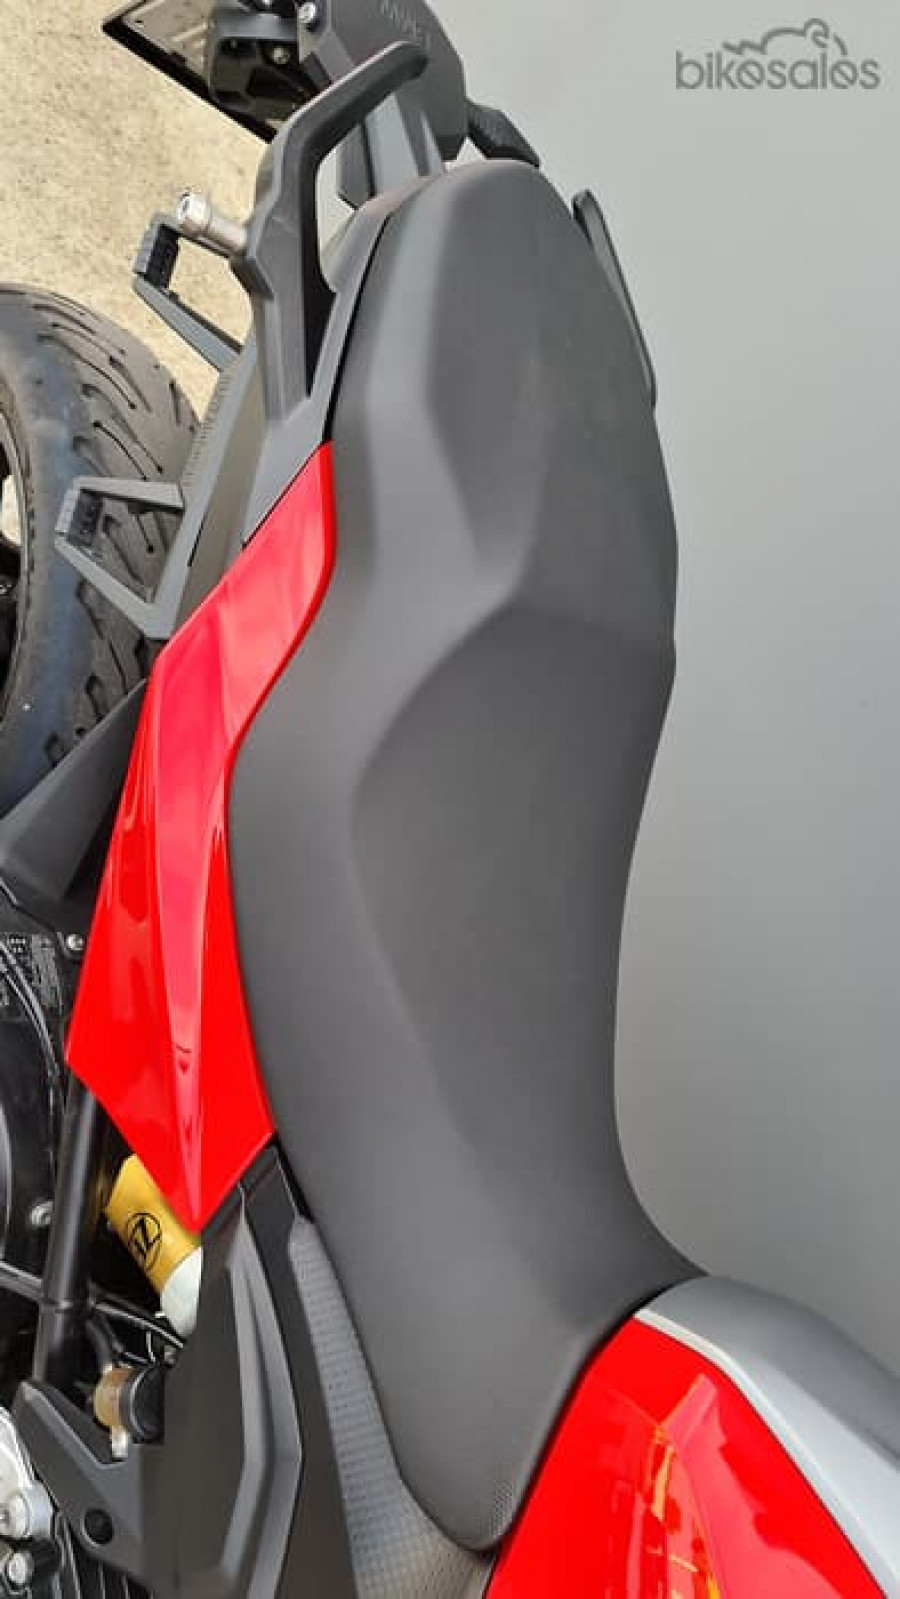 2020 BMW F 900 F XR Tour Motorcycle Image 6